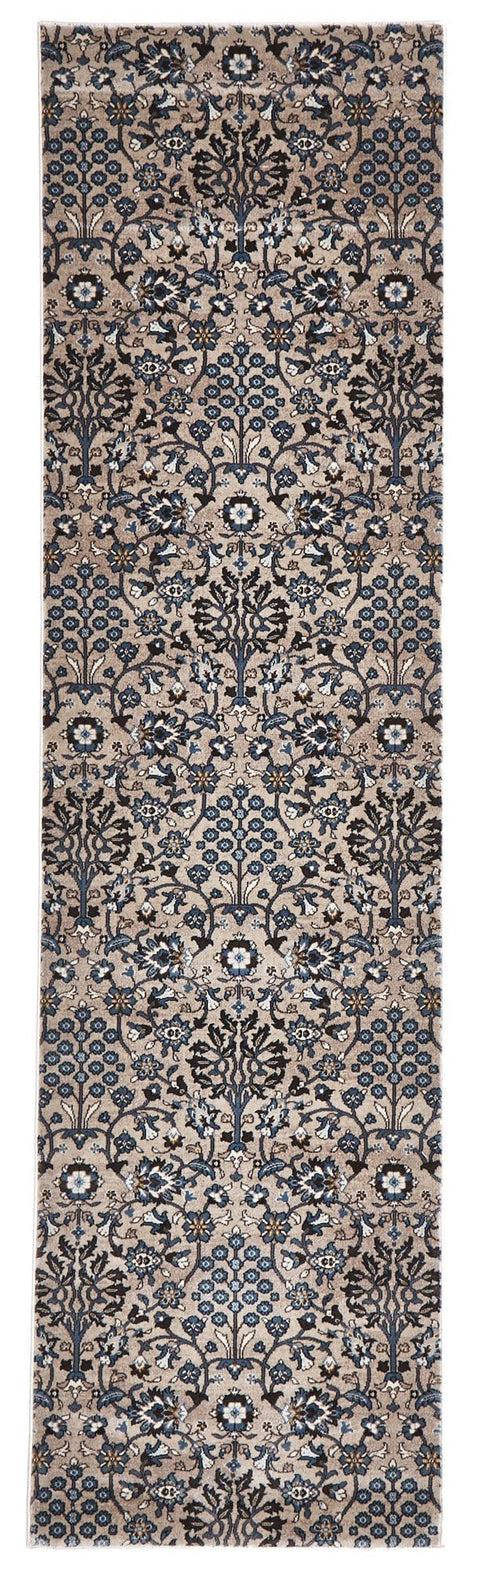 Mersin Beige & Blue Intricate Floral Turkish Runner Rug